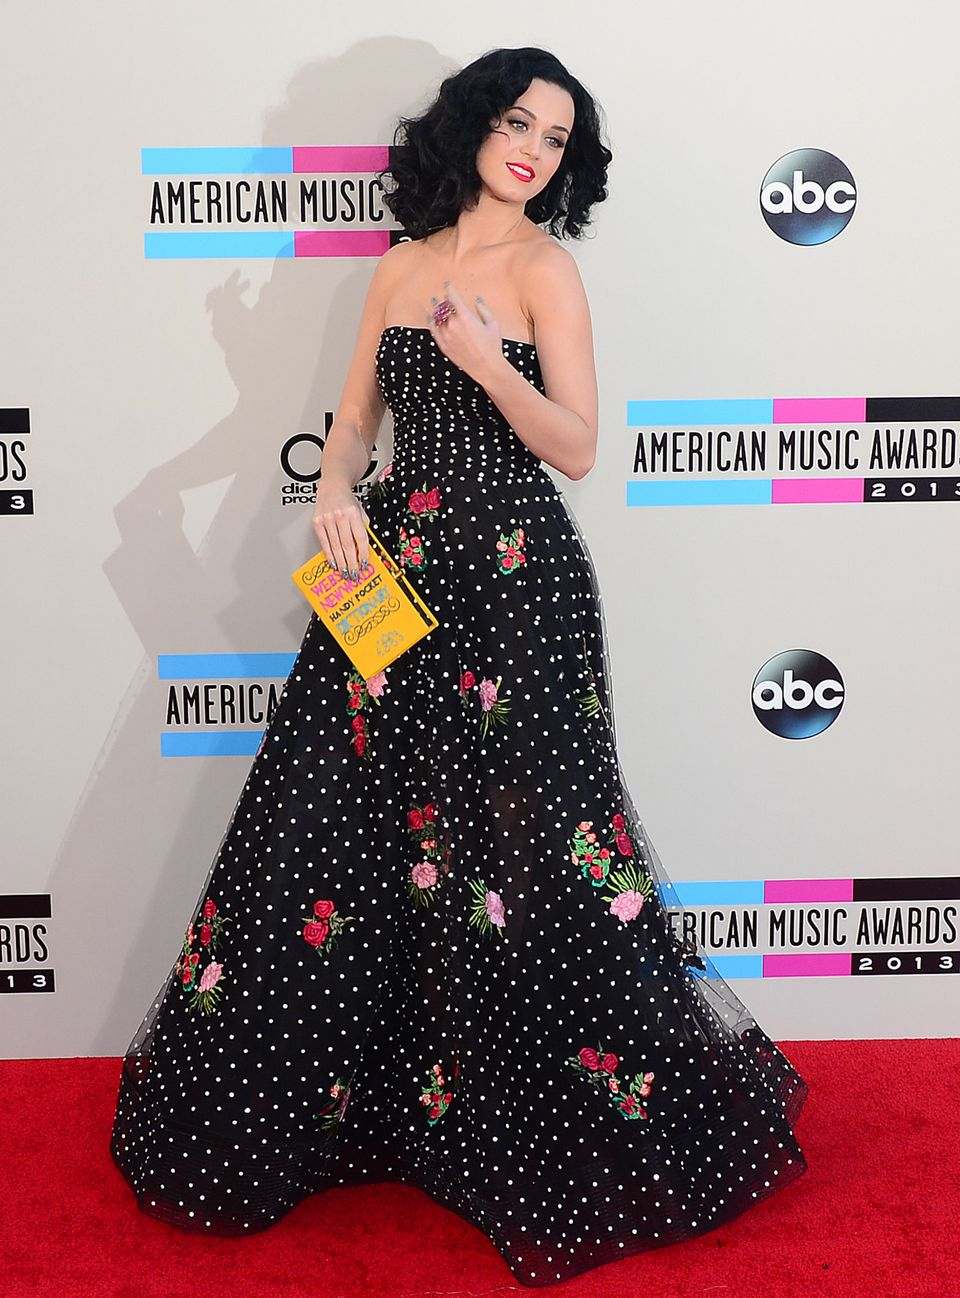 Katy Perry arrives for the 2013 American Music Awards at the Nokia Theatre L.A. Live in downtown Los Angeles, California, Nov